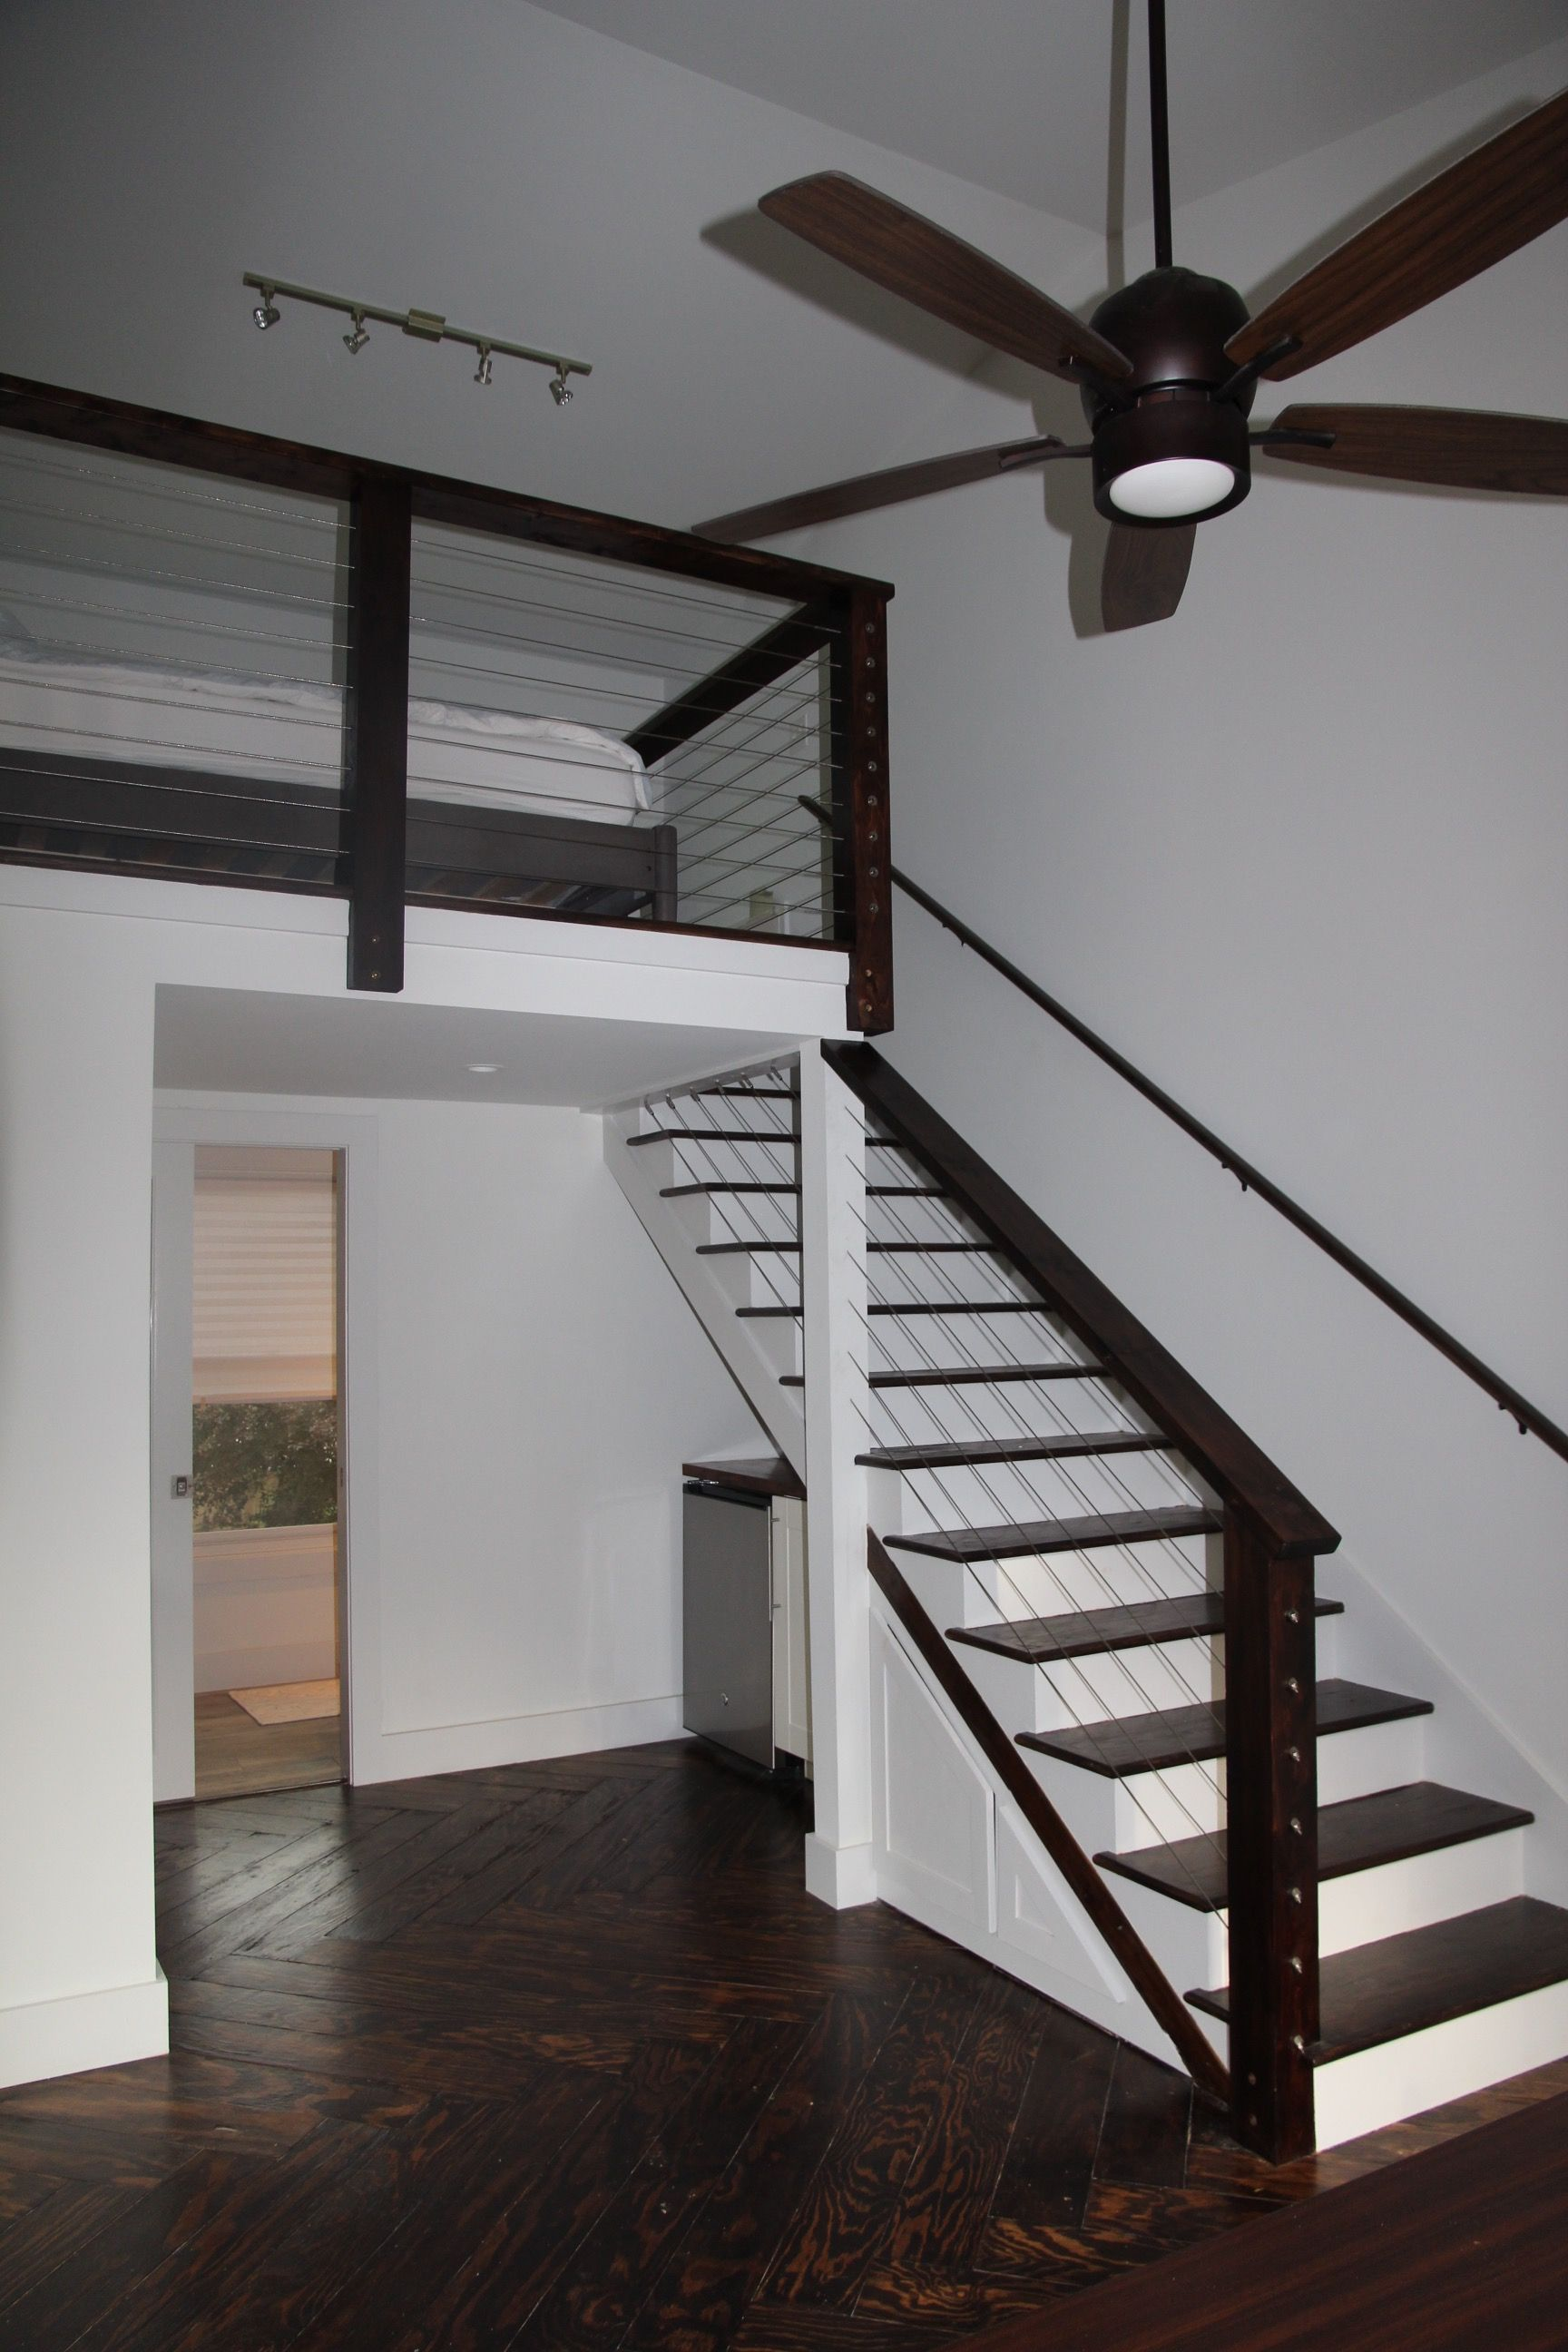 Stairs with cable rail up to loft | Stairs, Tiny house